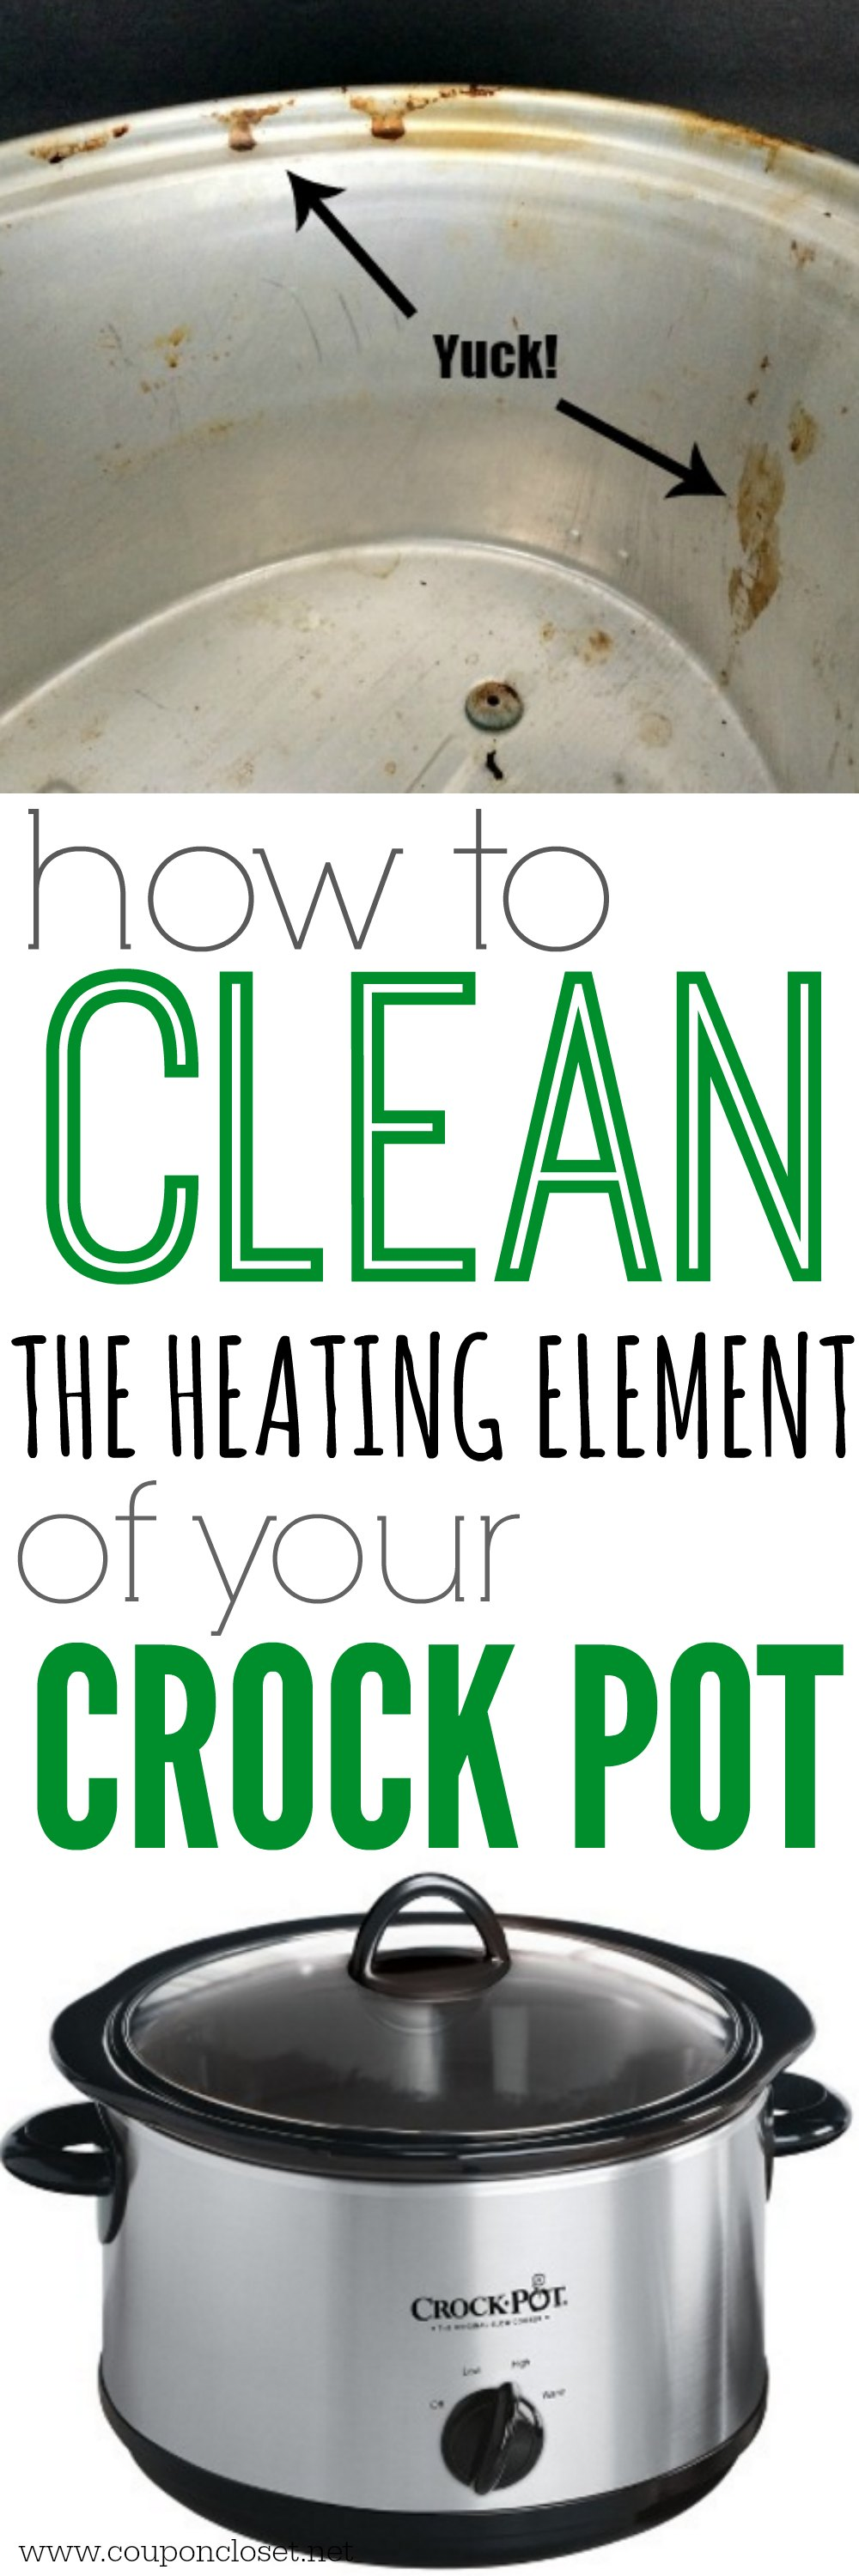 how to clean crock pot - the heating element